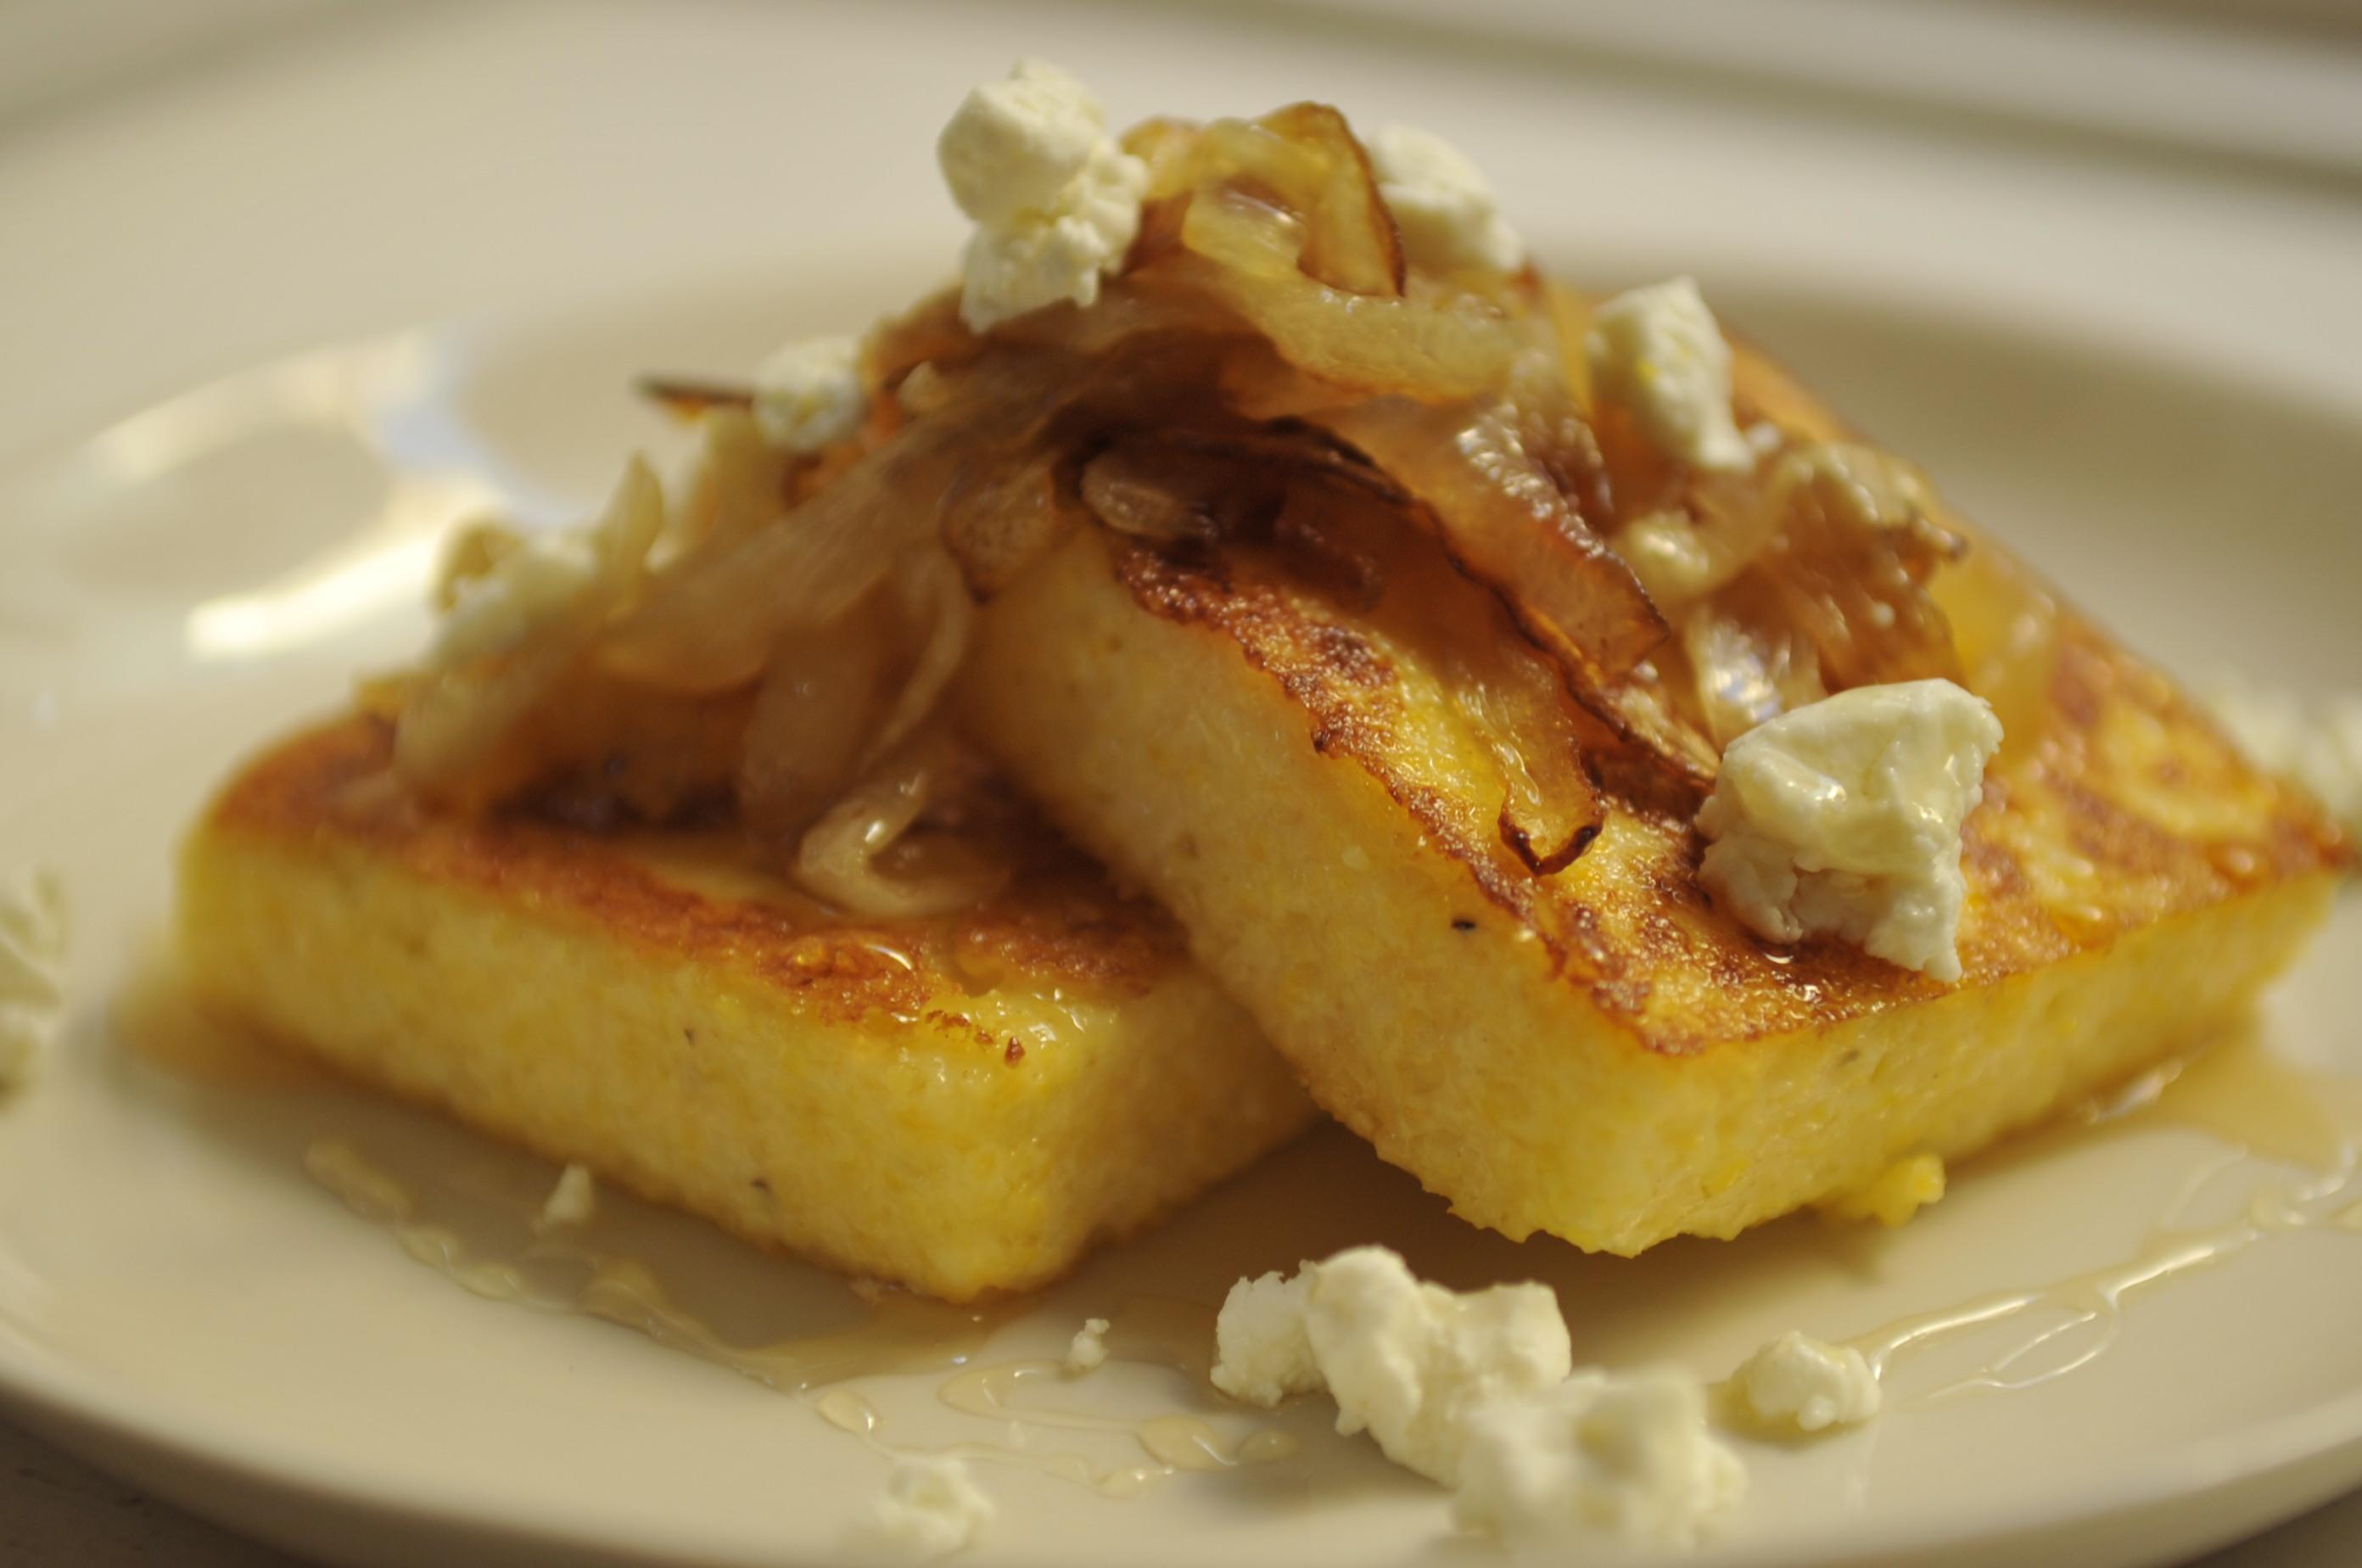 Griddled Polenta Cakes with Caramelized Onions, Goat Cheese, and Honey ...